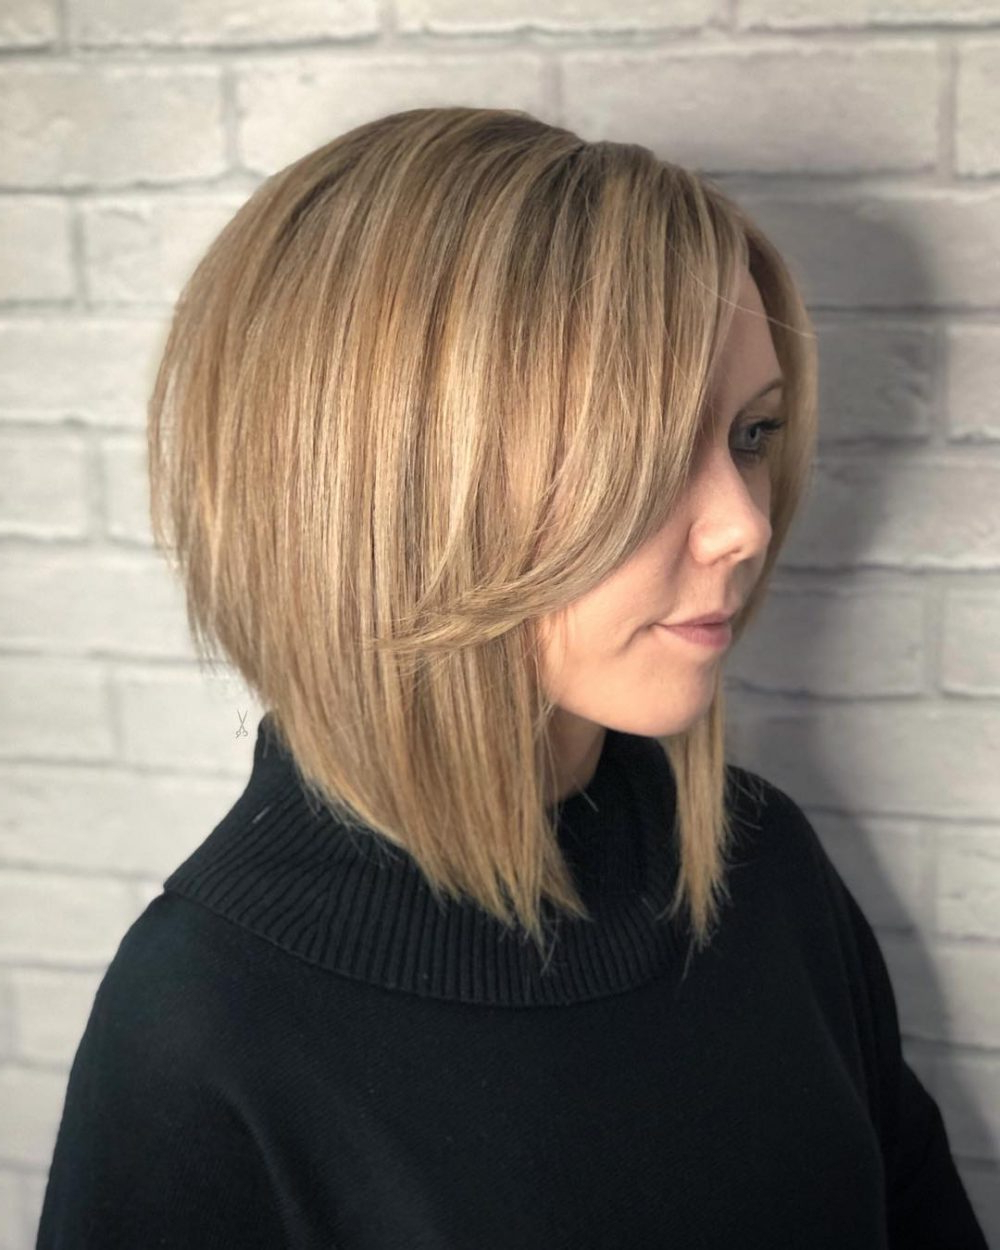 34 Greatest Short Haircuts And Hairstyles For Thick Hair For 2018 Inside Edgy Short Haircuts For Thick Hair (View 14 of 25)